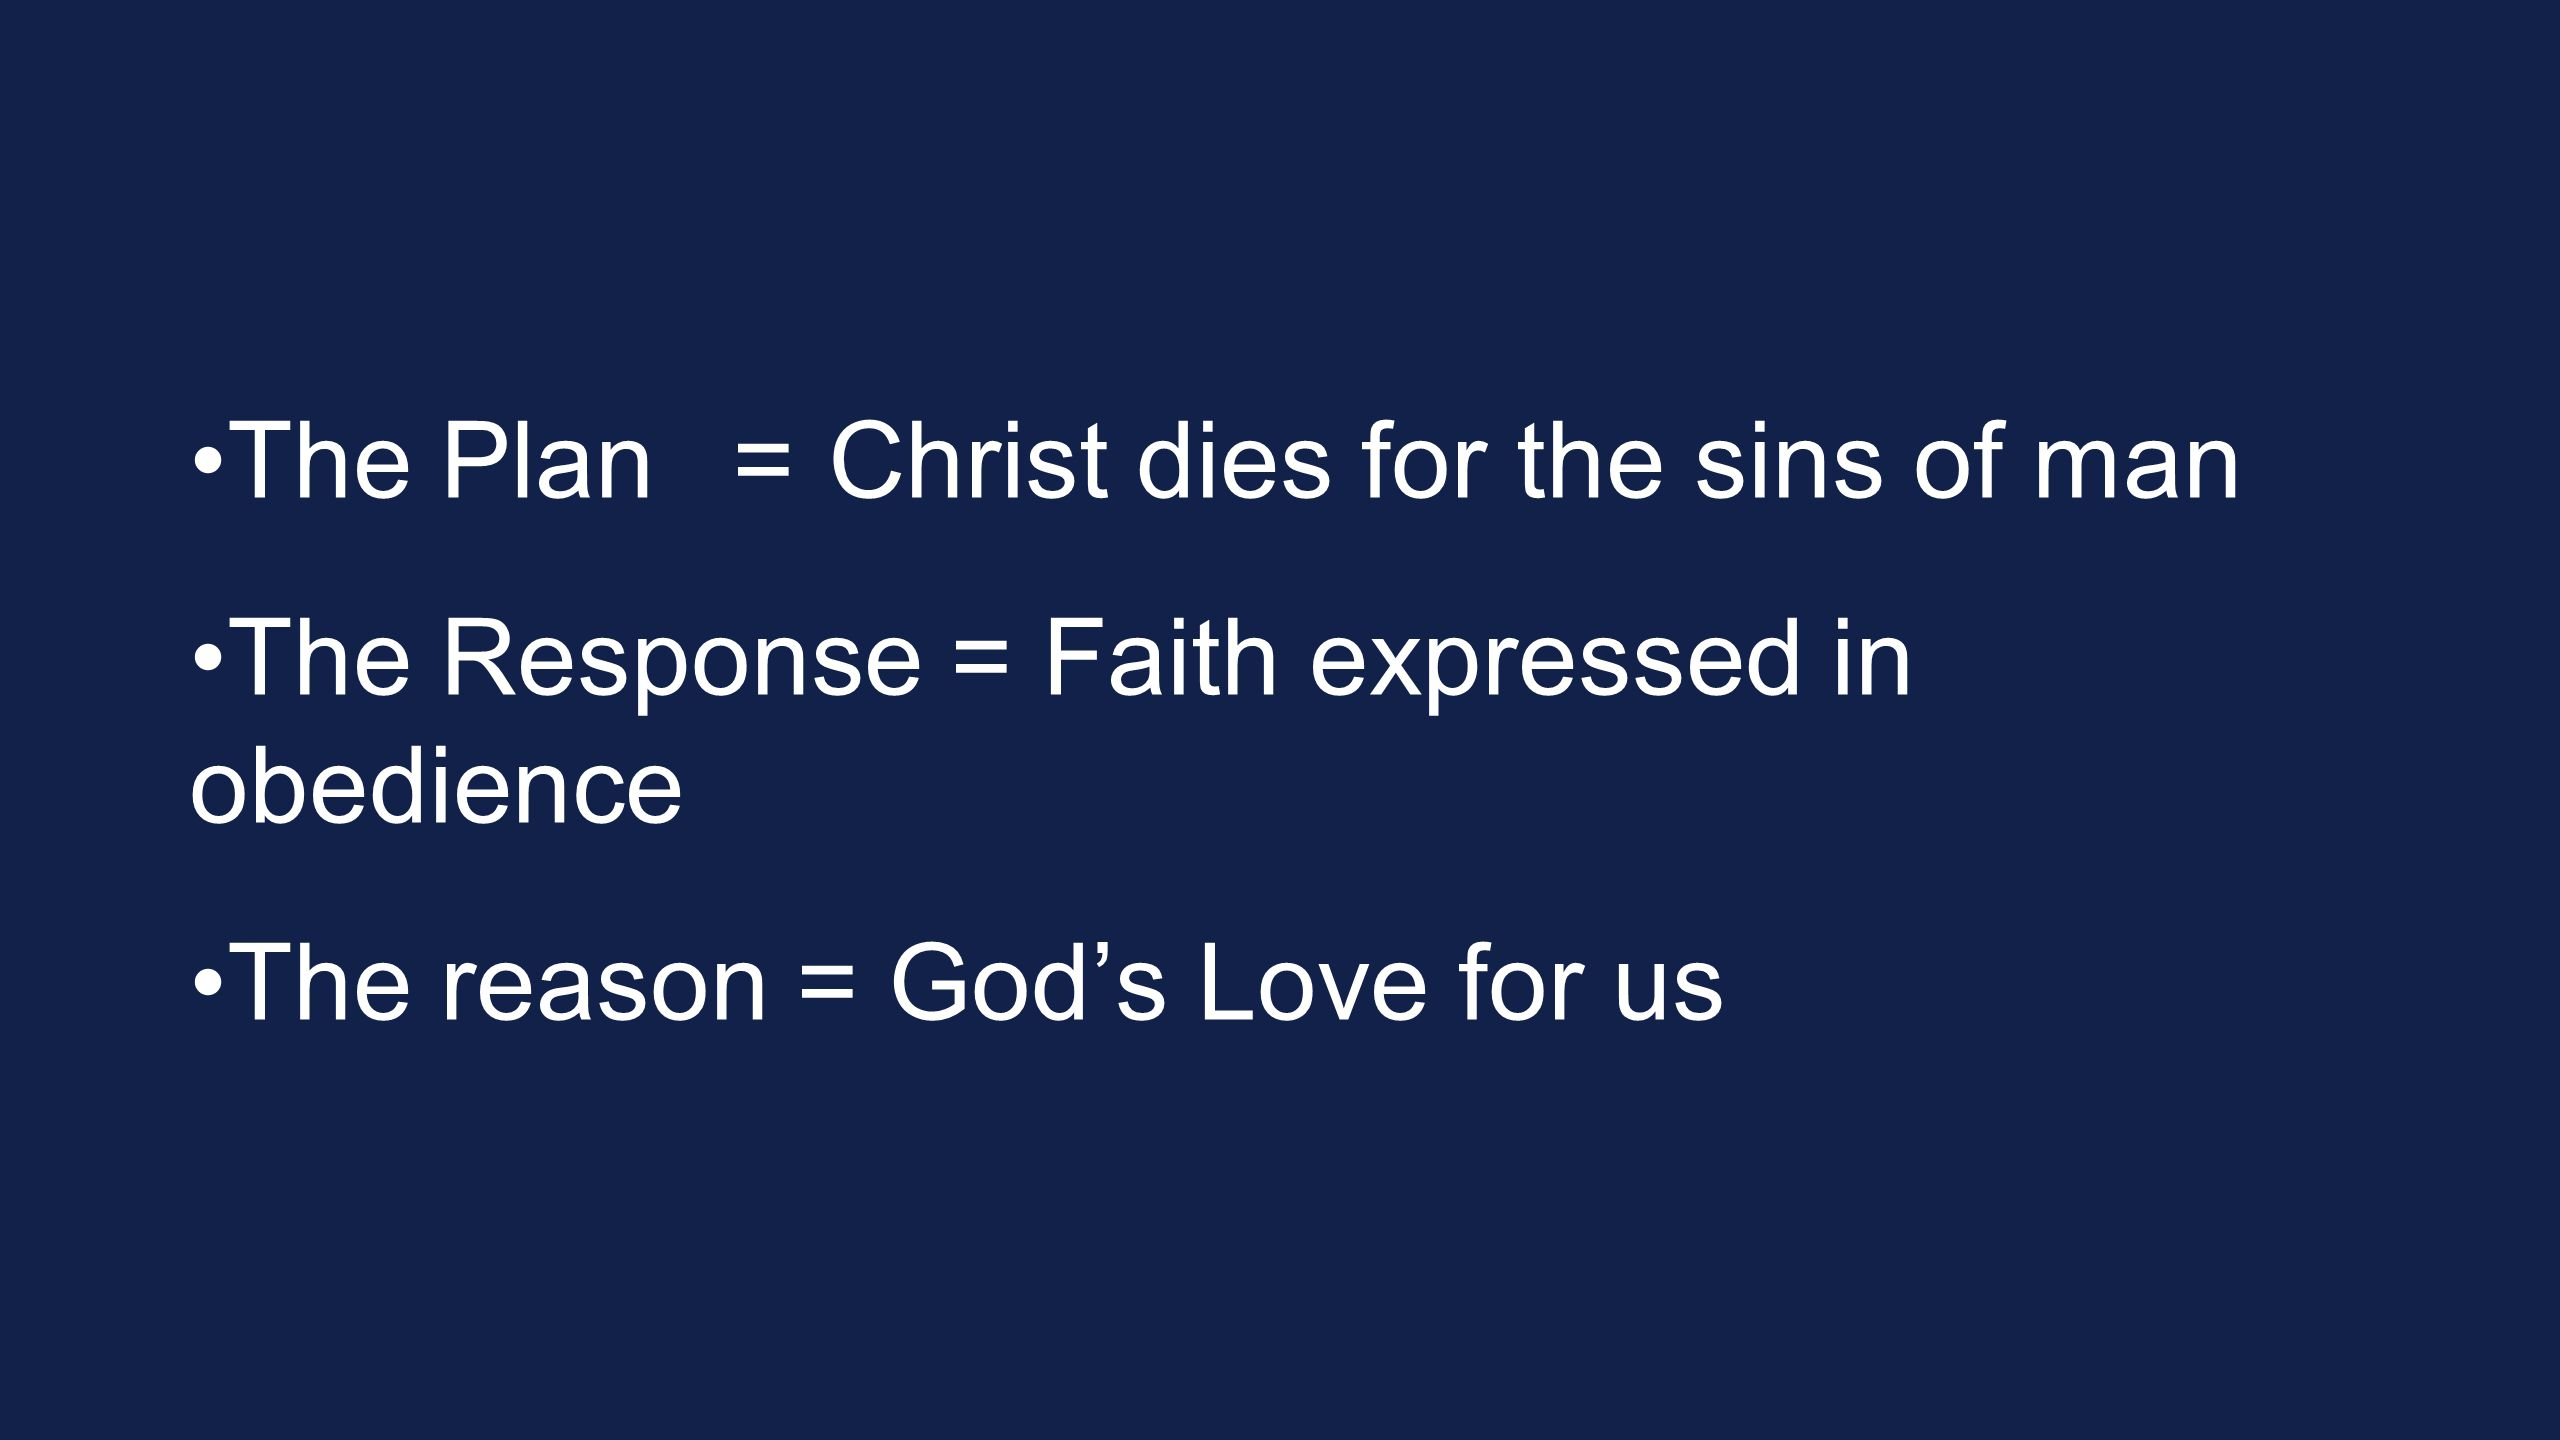 The Plan=Christ dies for the sins of man The Response = Faith expressed in obedience The reason = God's Love for us